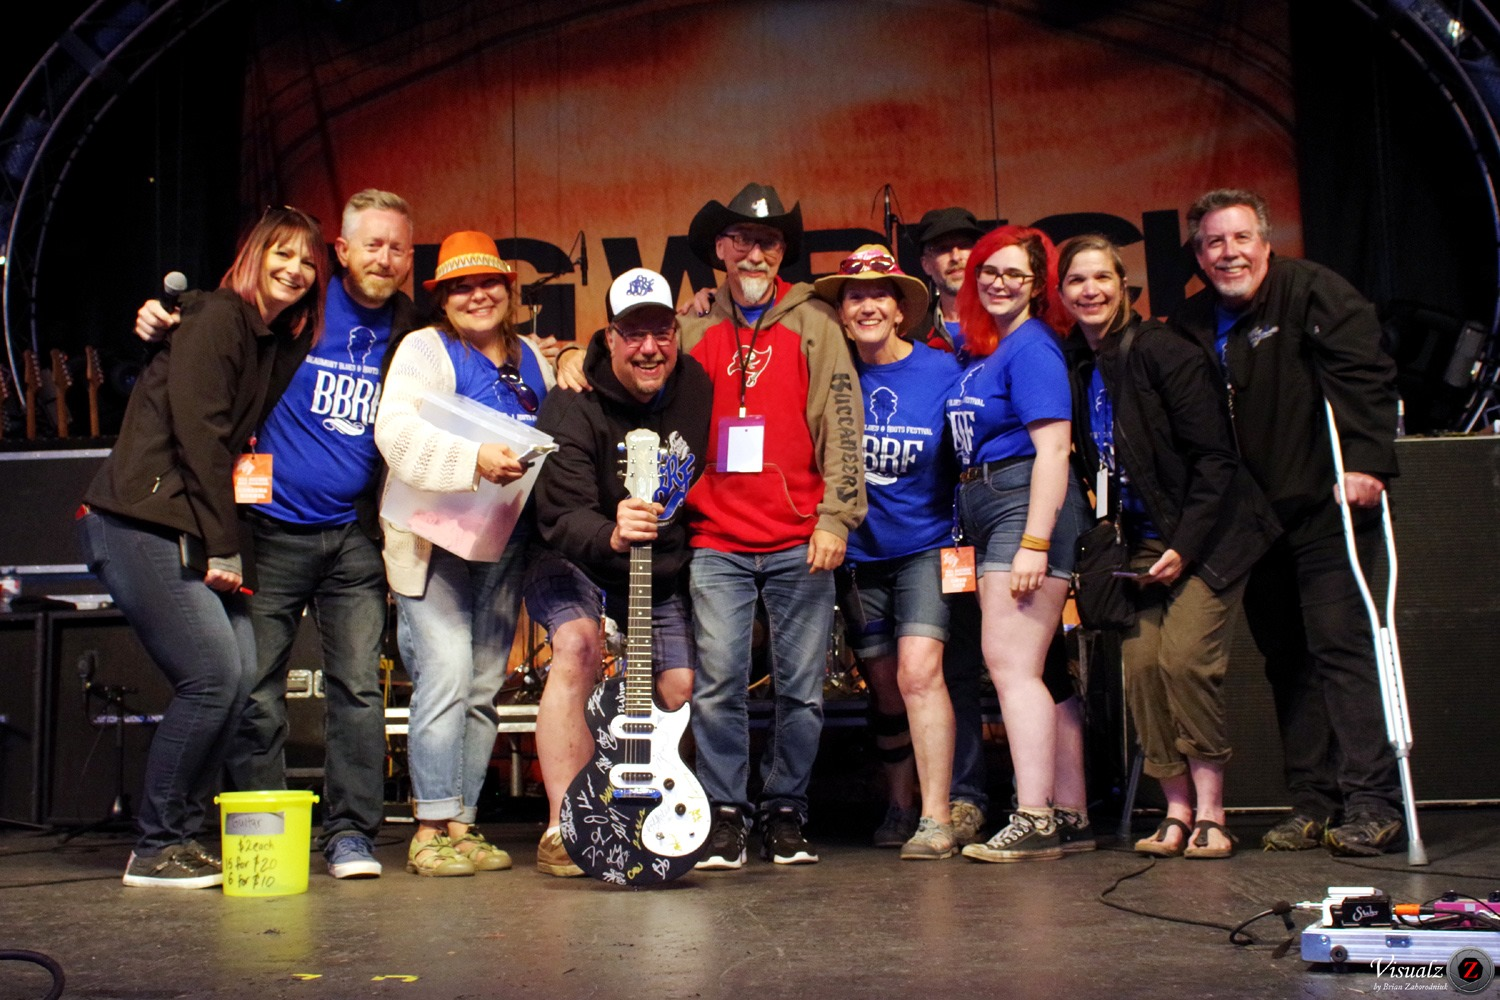 The BBRF Society Beaumont Blues